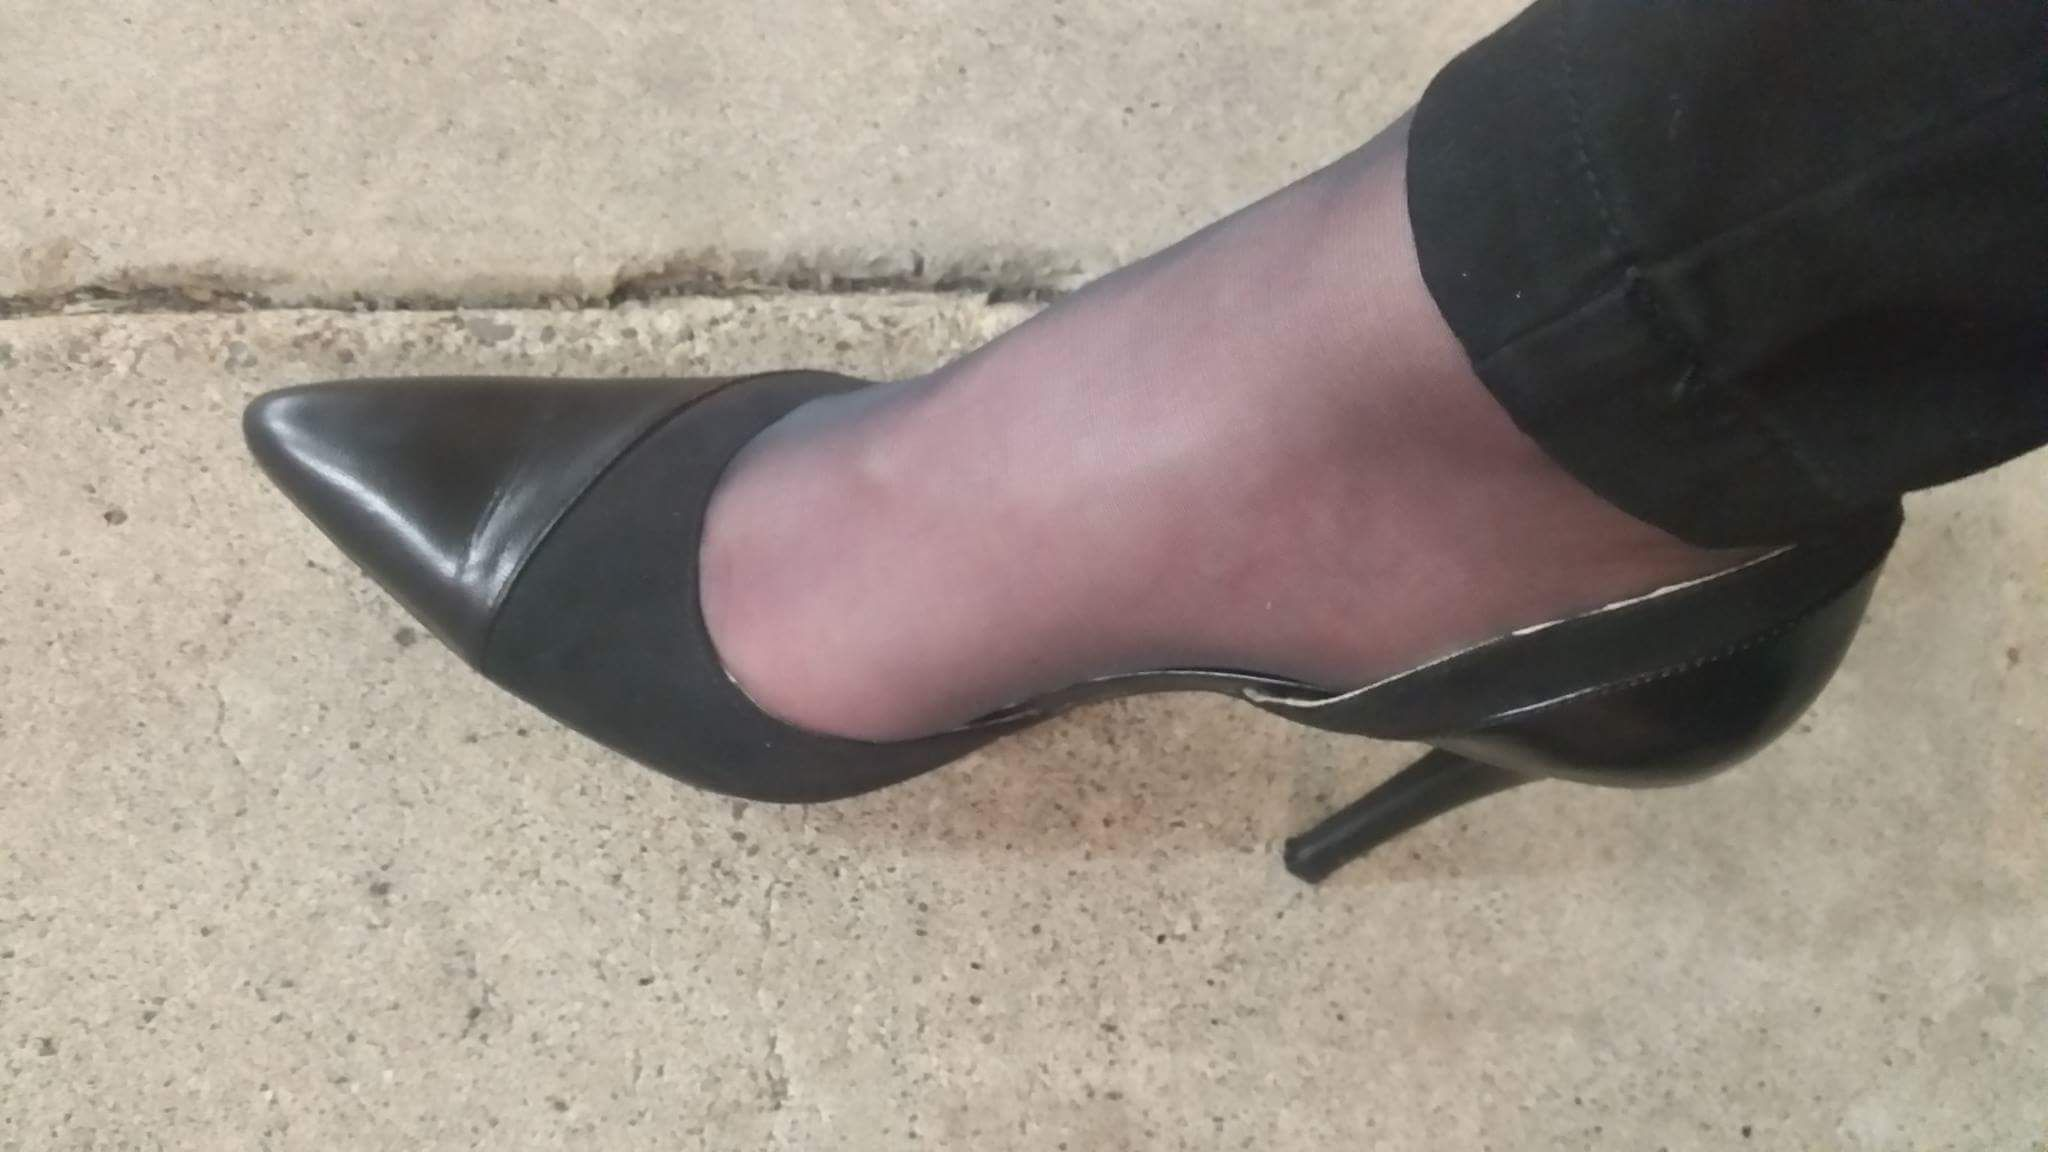 Pin By Jaspers On Tights Under Jeans Pictures Of Shoes Tights Under Jeans Heels